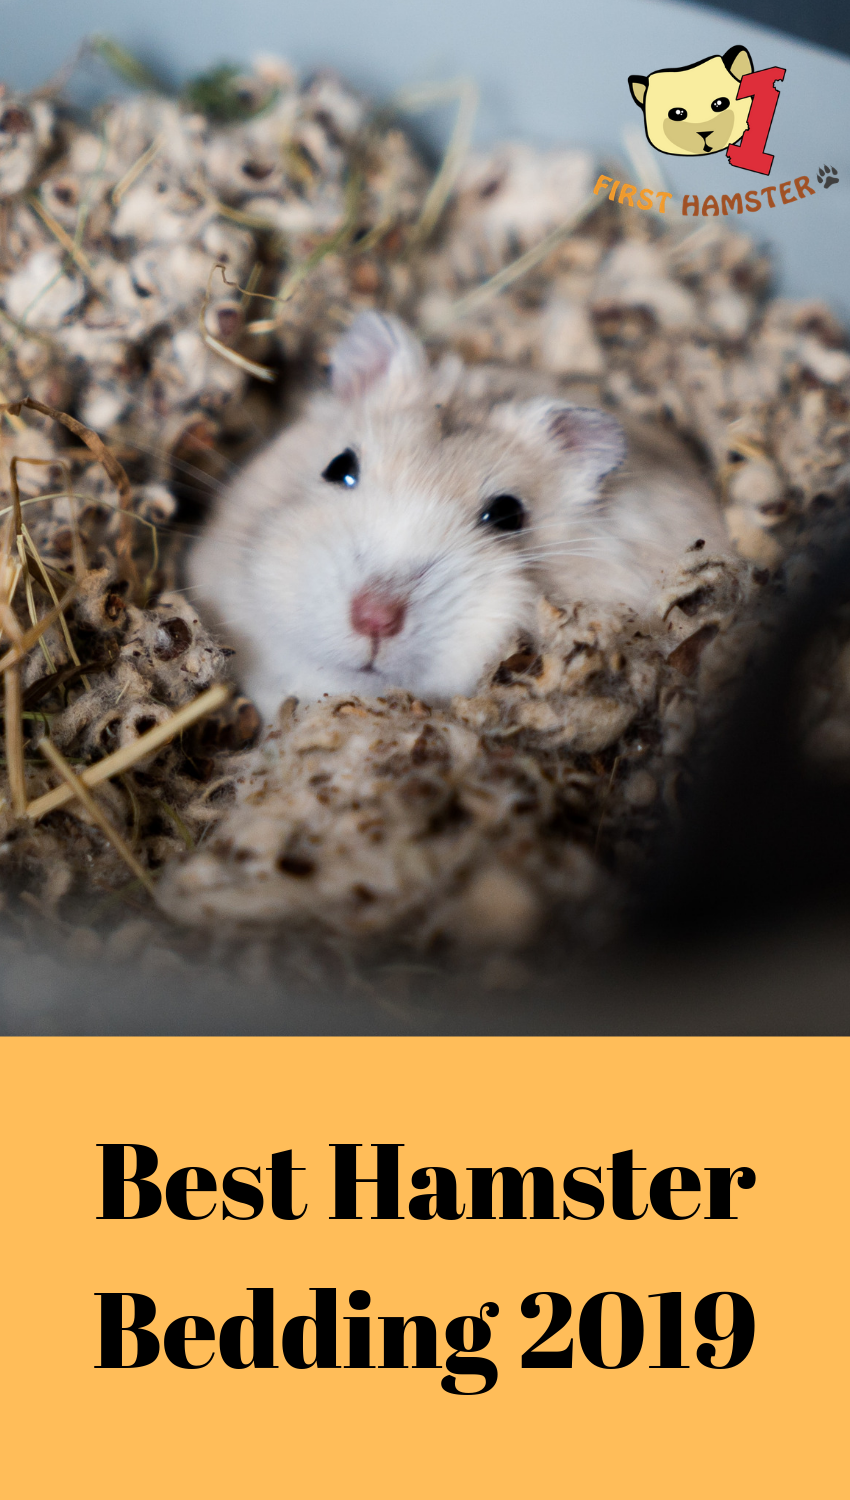 4 Best Hamster Bedding/Substrate Options (An Owner's Opinion)